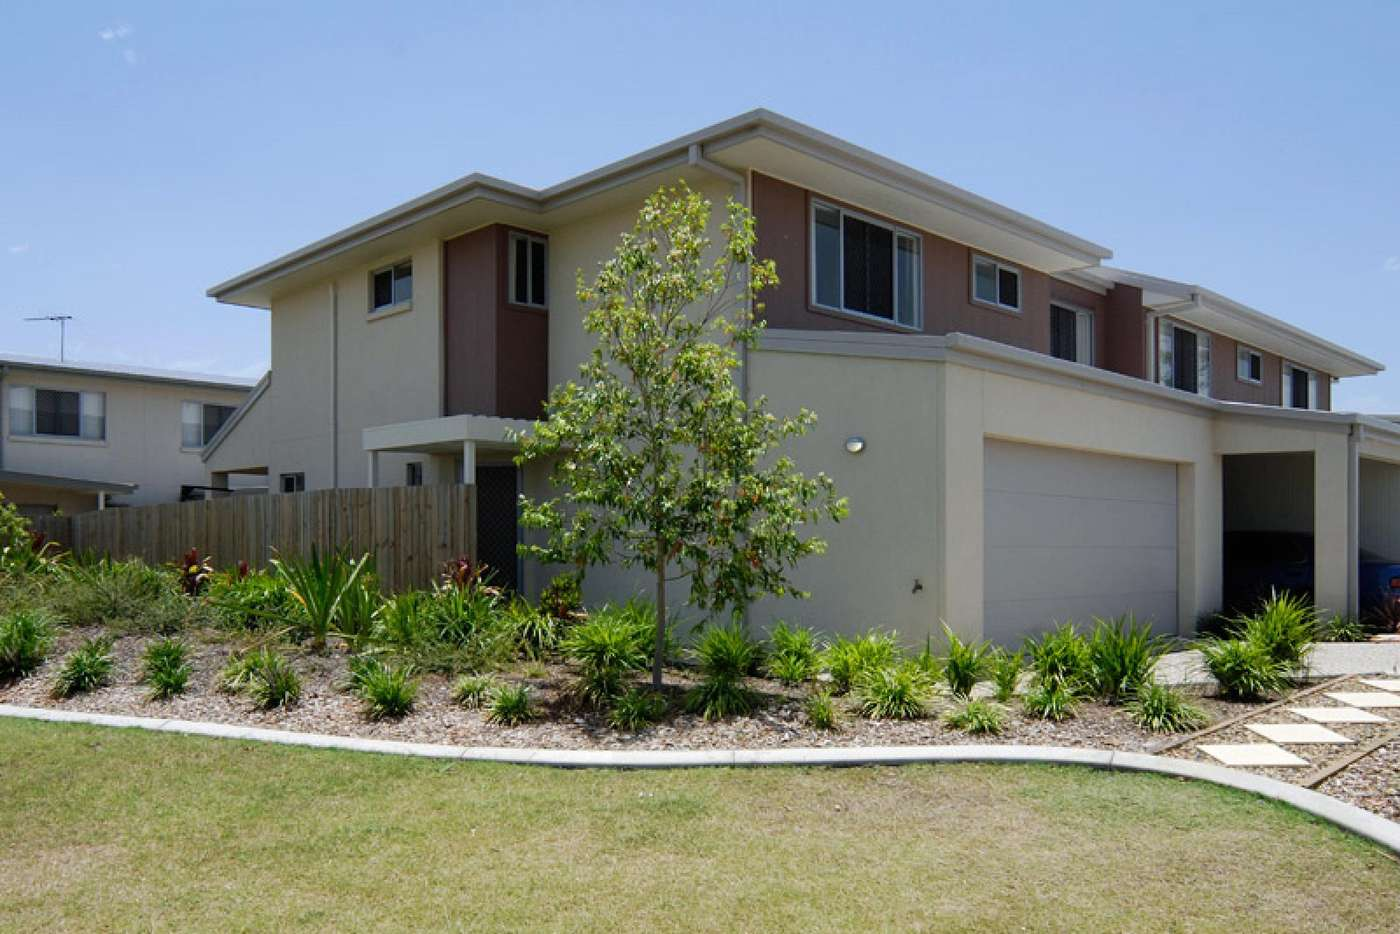 Main view of Homely townhouse listing, 50 Perkins Street, Calamvale QLD 4116